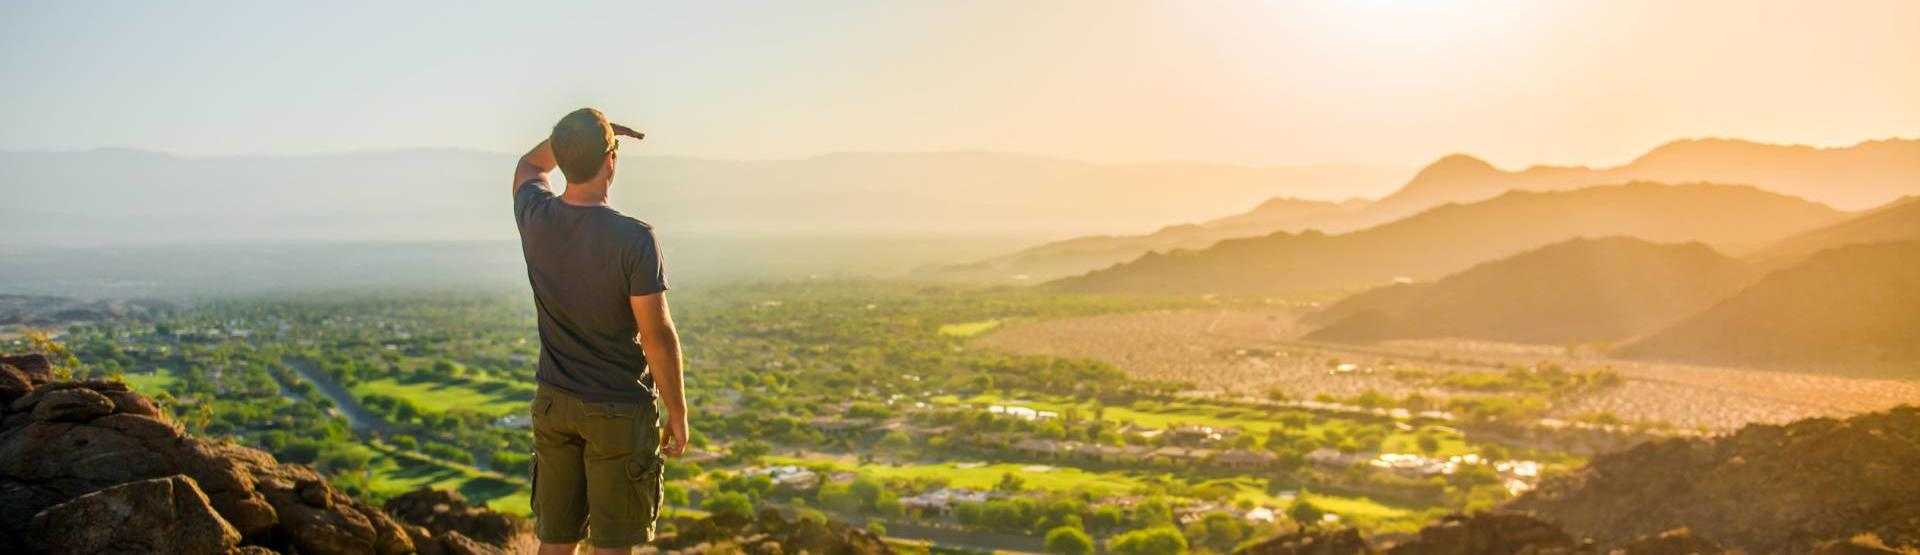 header_bump_and_grind_palm_desert_scenic_view__hero